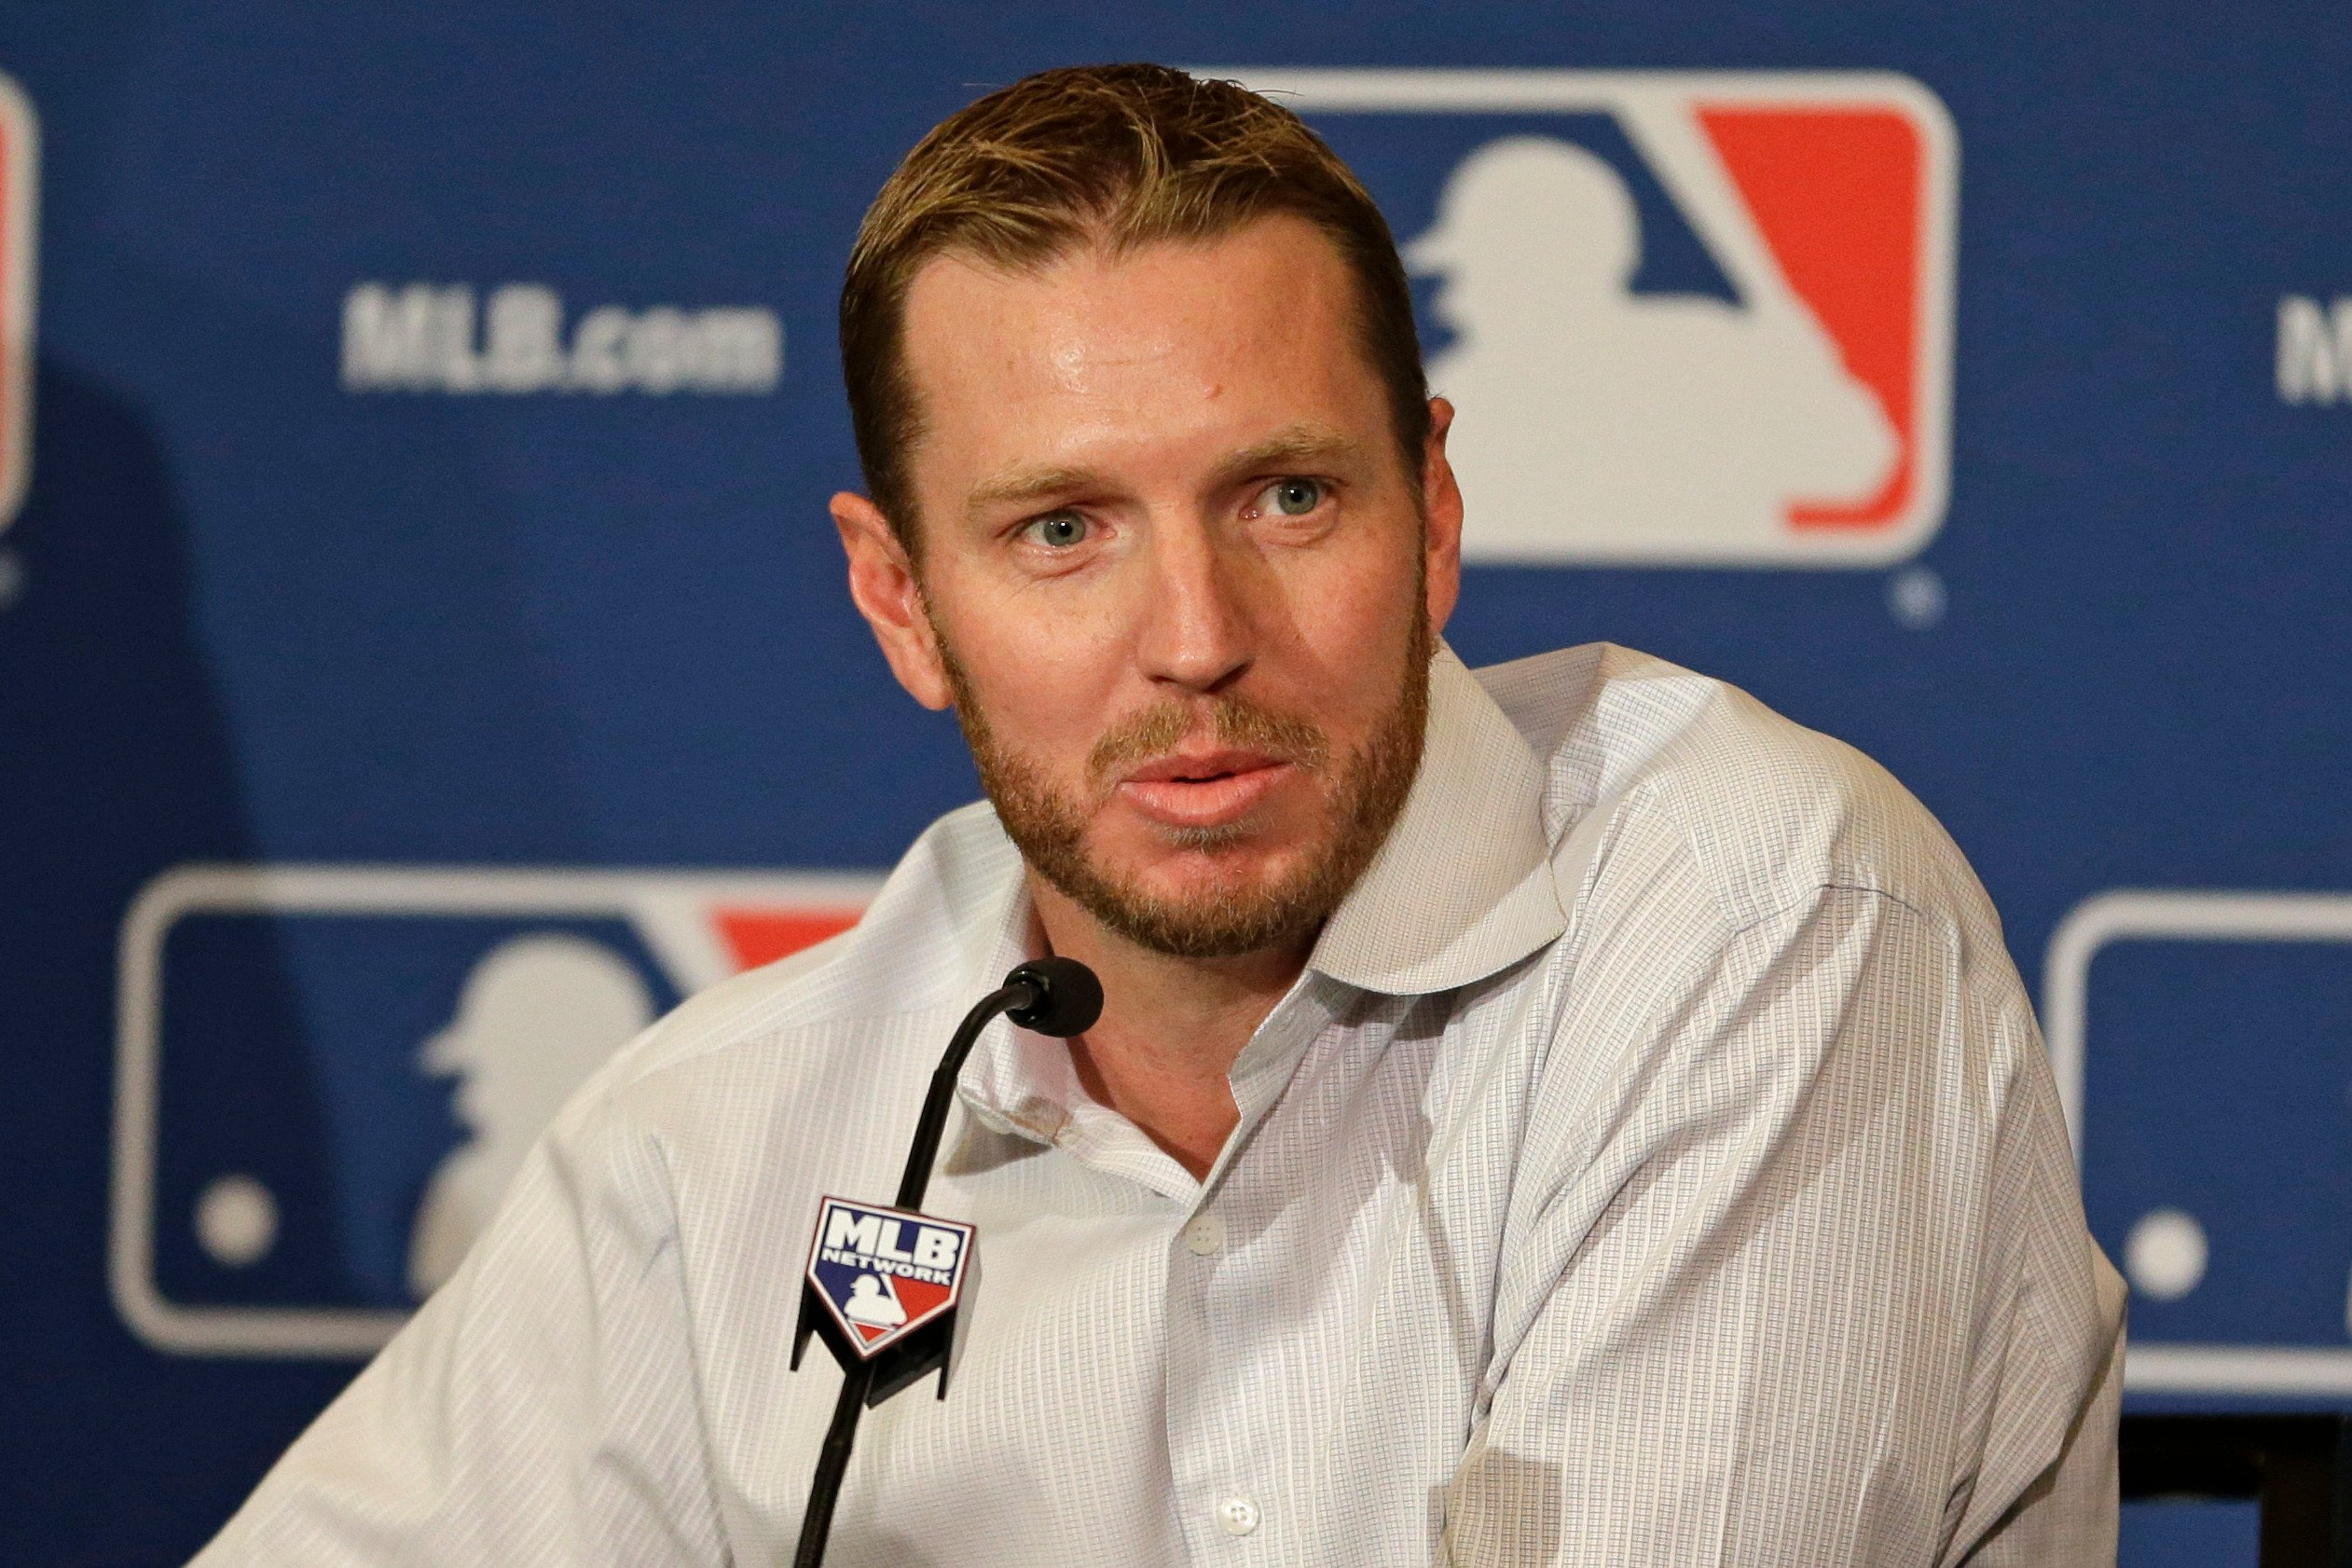 Halladay had morphine in his system during deadly plane crash